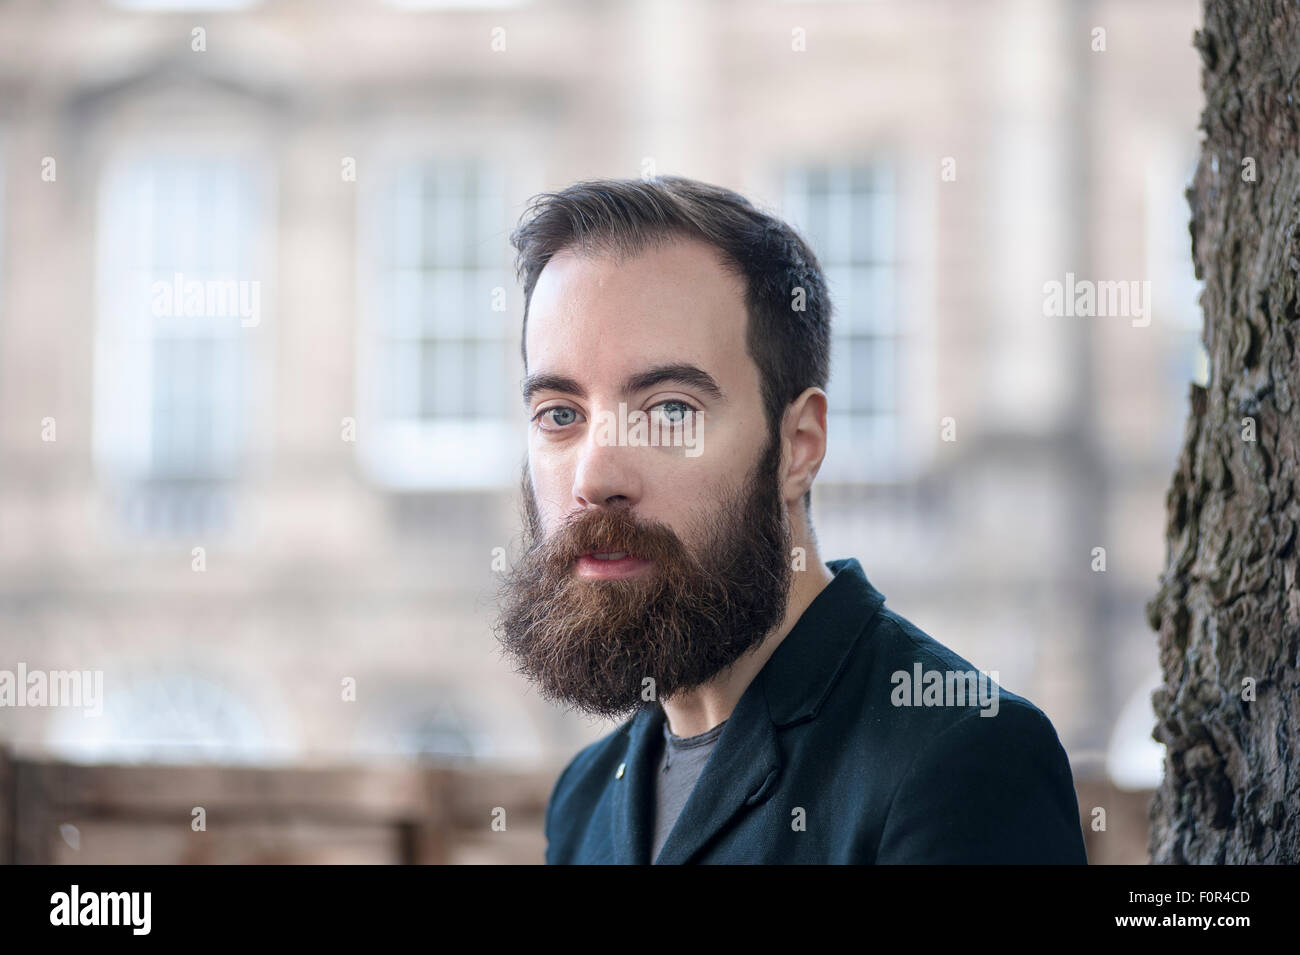 British novelist and journalist Ned Beauman, appearing at the Edinburgh International Book Festival. - Stock Image